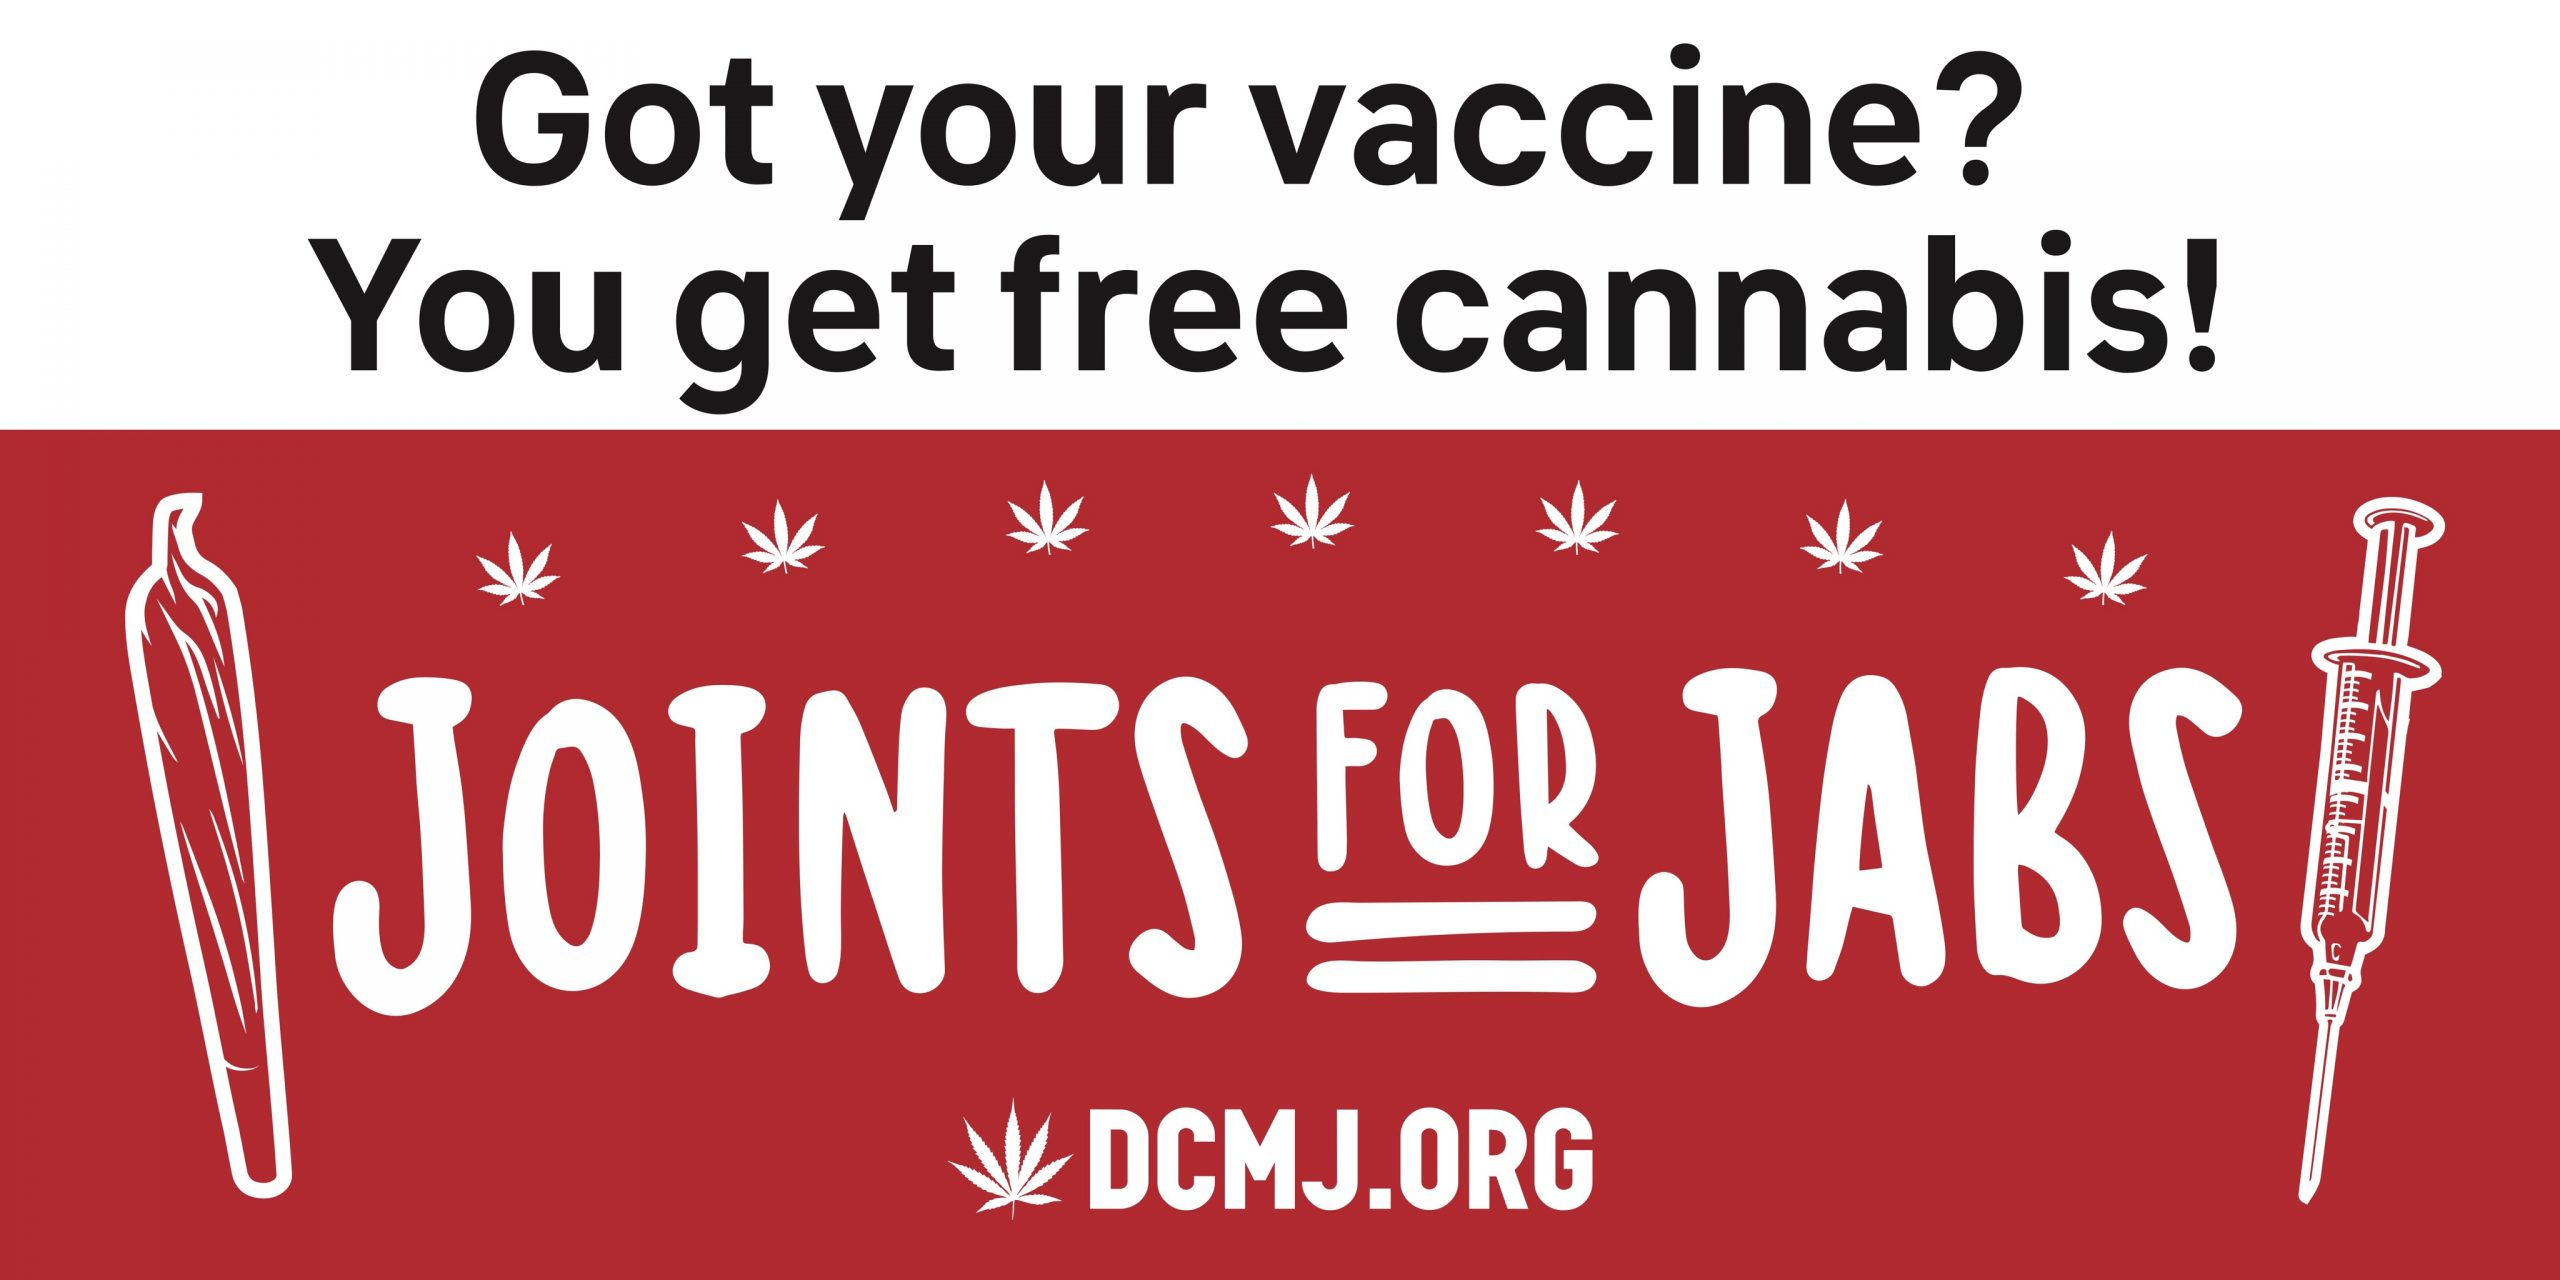 Joints For Jabs - DC Marijuana Justice